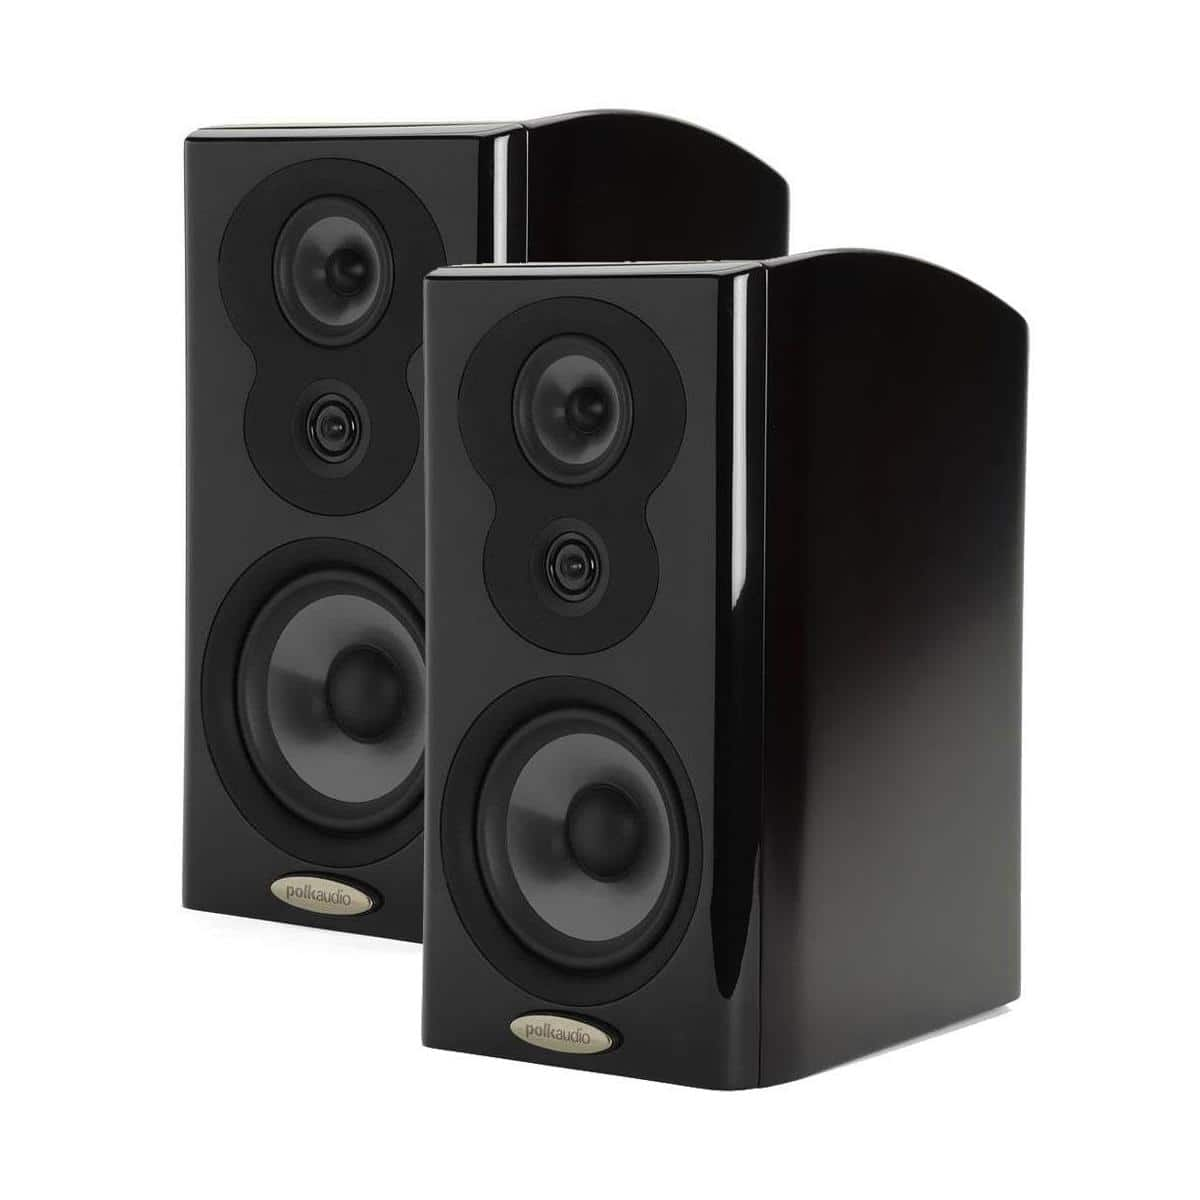 (pair) Polk LSI m703 Bookshelf Speakers $449  + free s/h